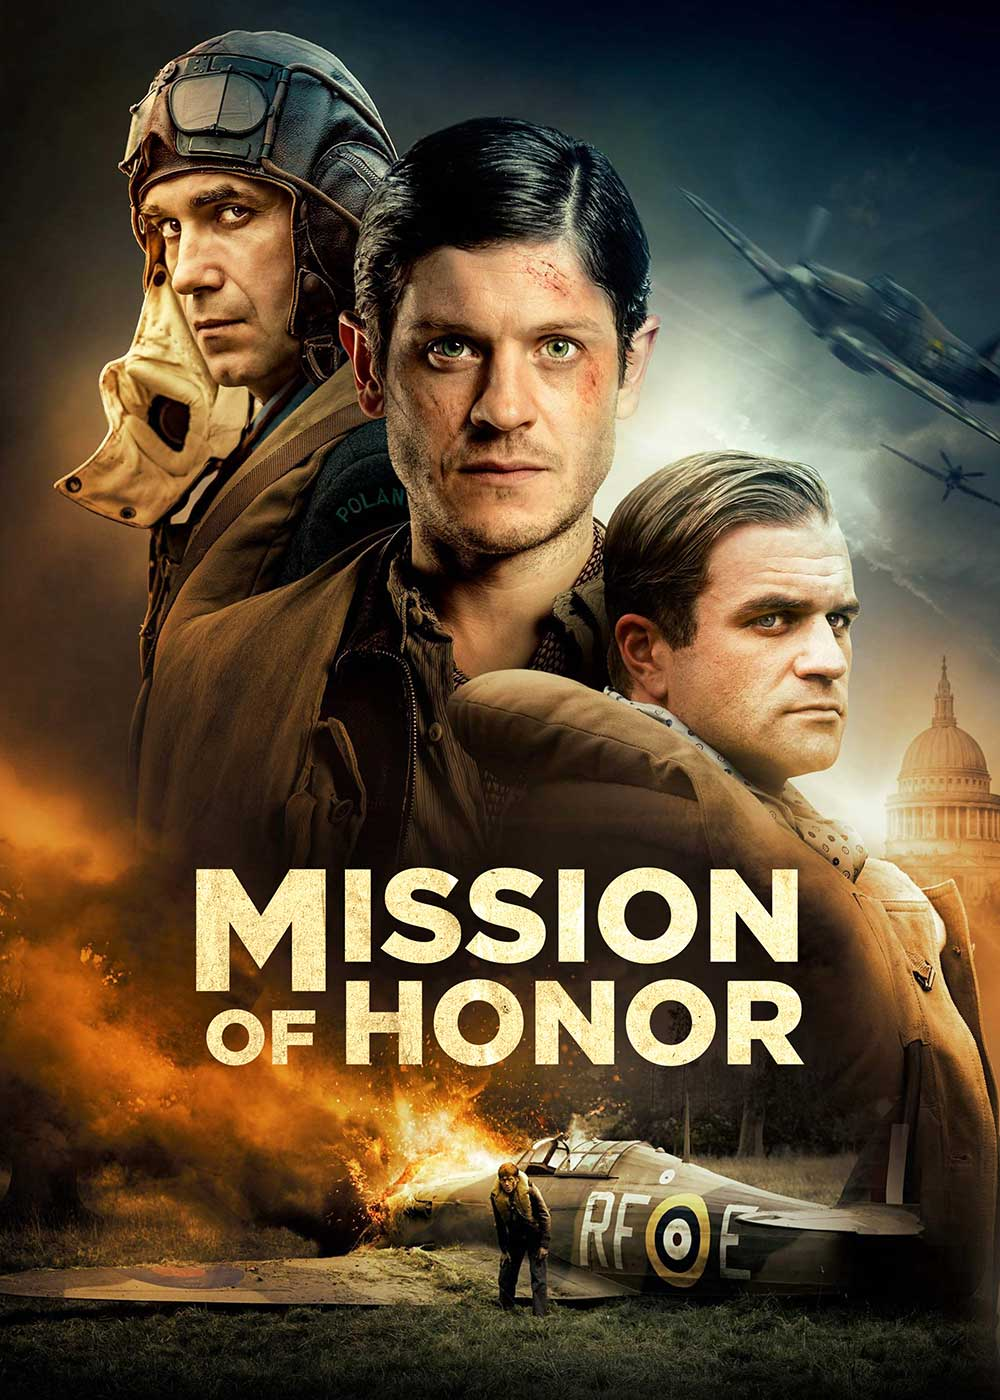 Mission_of_Honor_poster.jpg